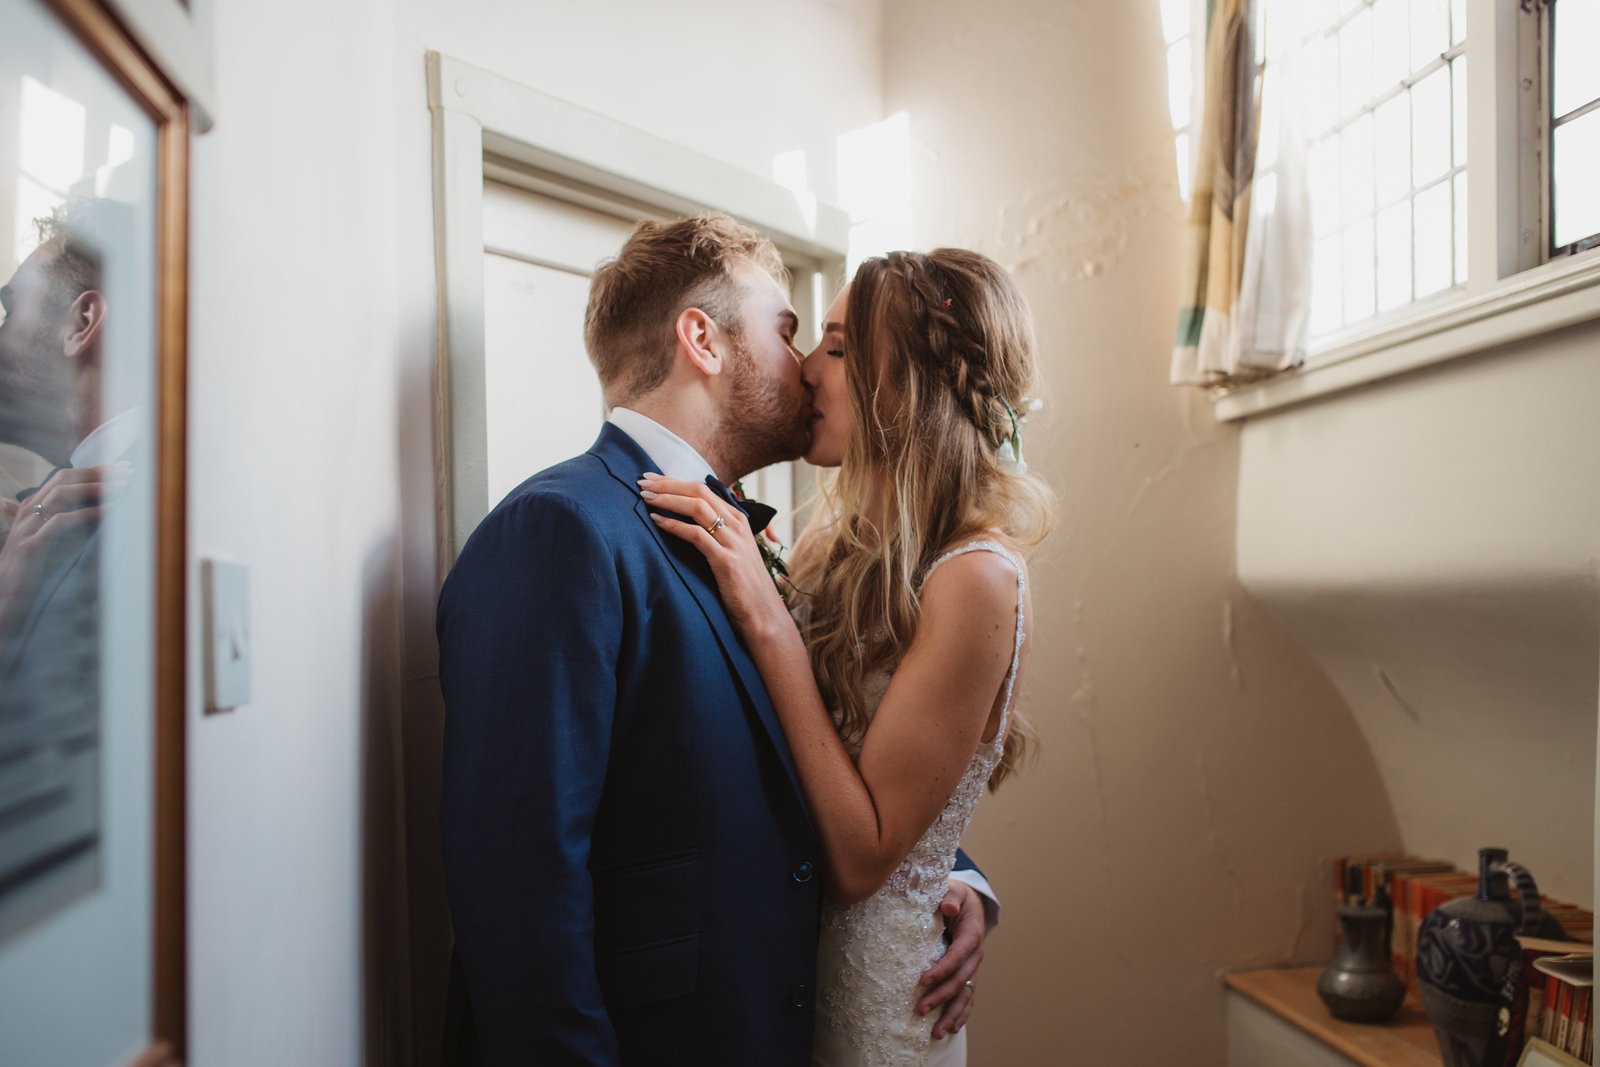 Candid photograph of a Bride and Groom romantically kiss down a corridor during their wedding reception